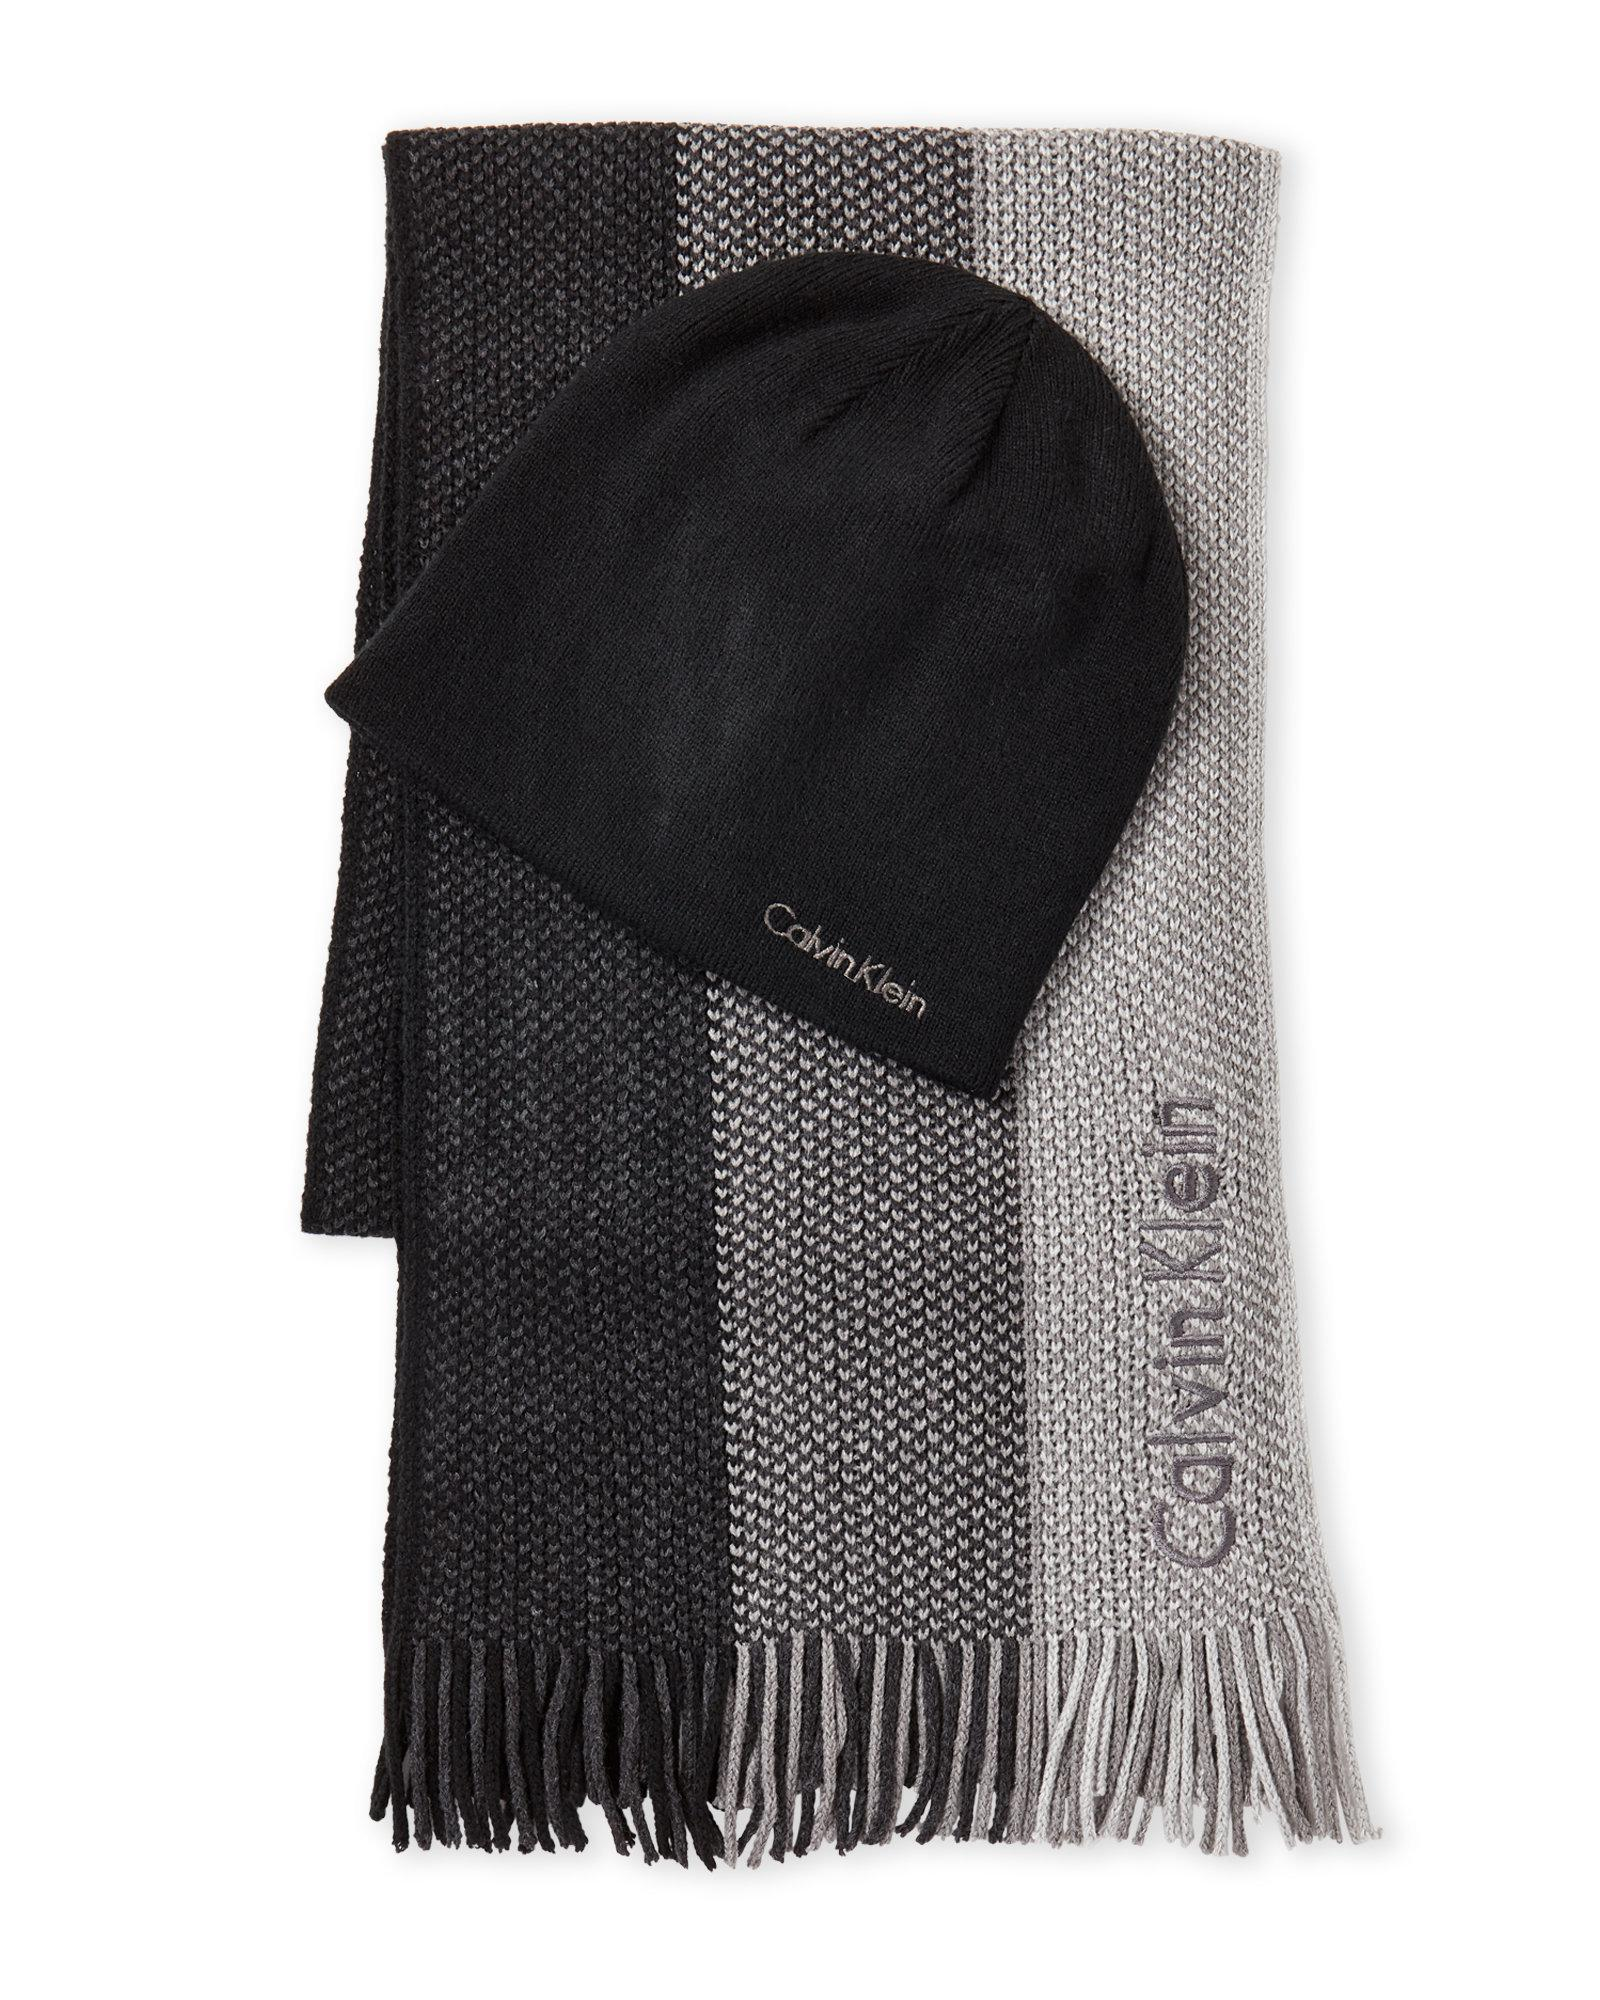 Lyst - Calvin Klein 2-Piece Raschel Striped Scarf   Hat Set in Black ... 33fd7046972